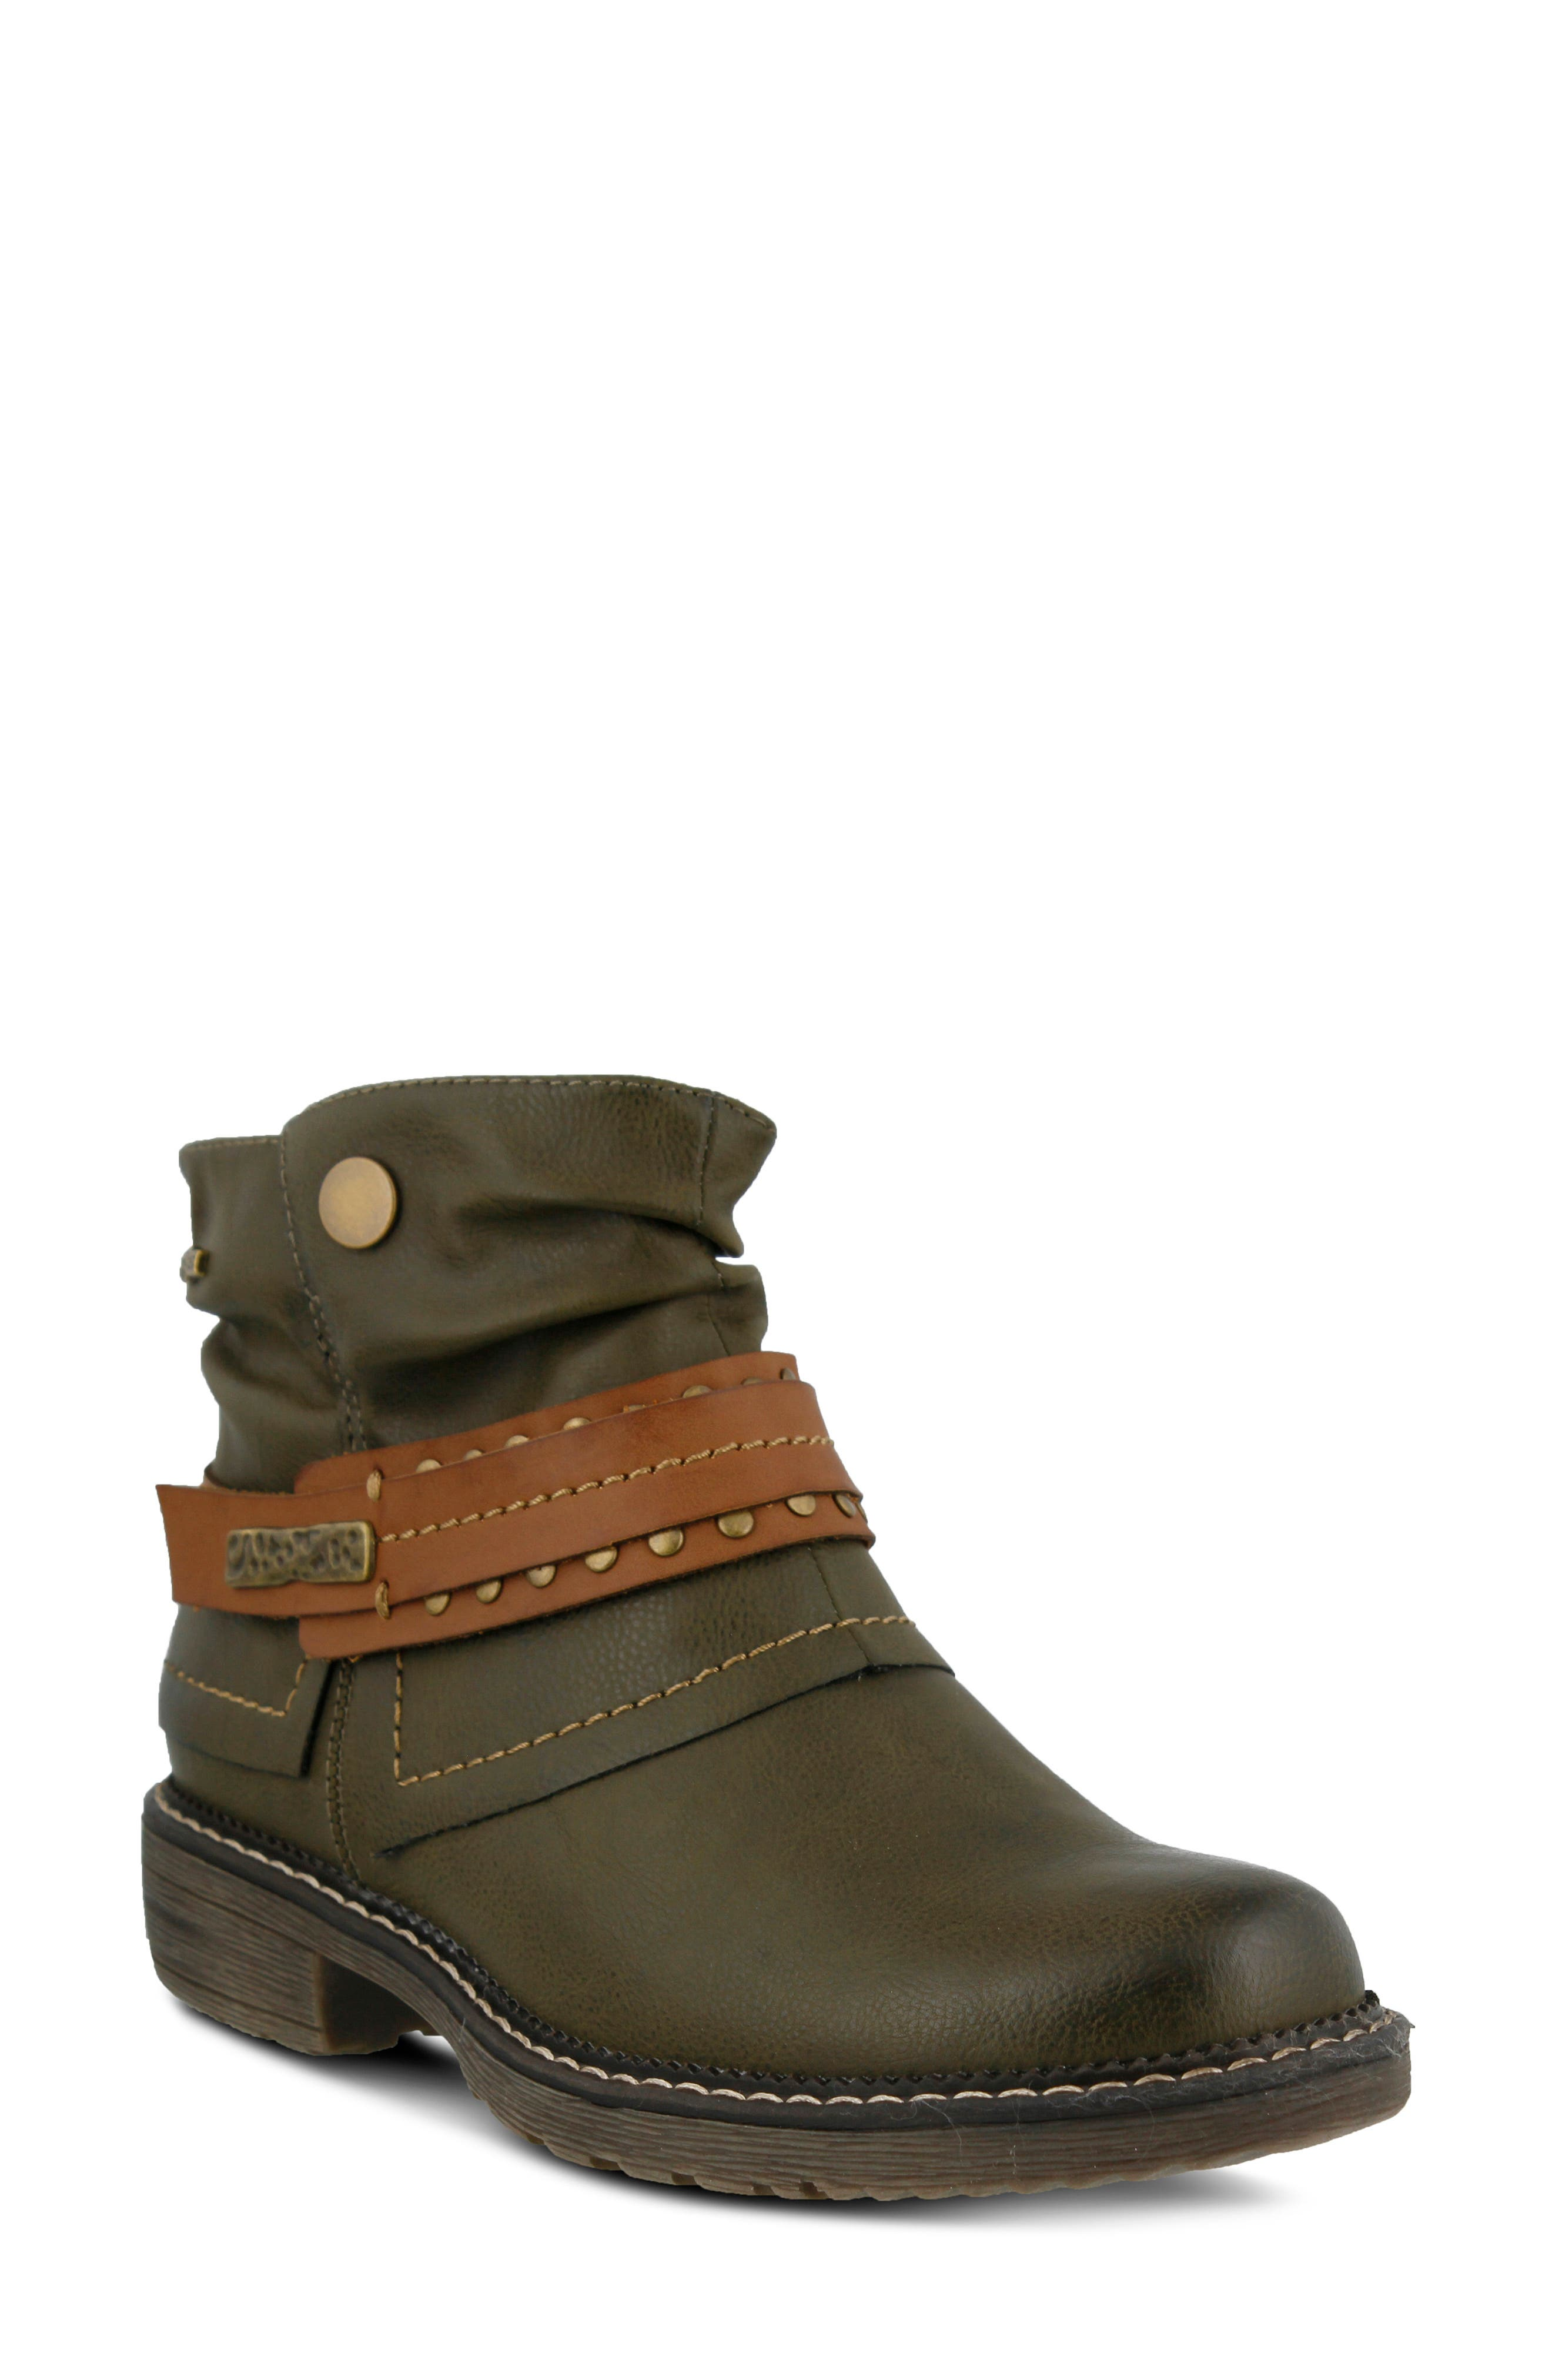 Spring Step Murna Bootie - Green